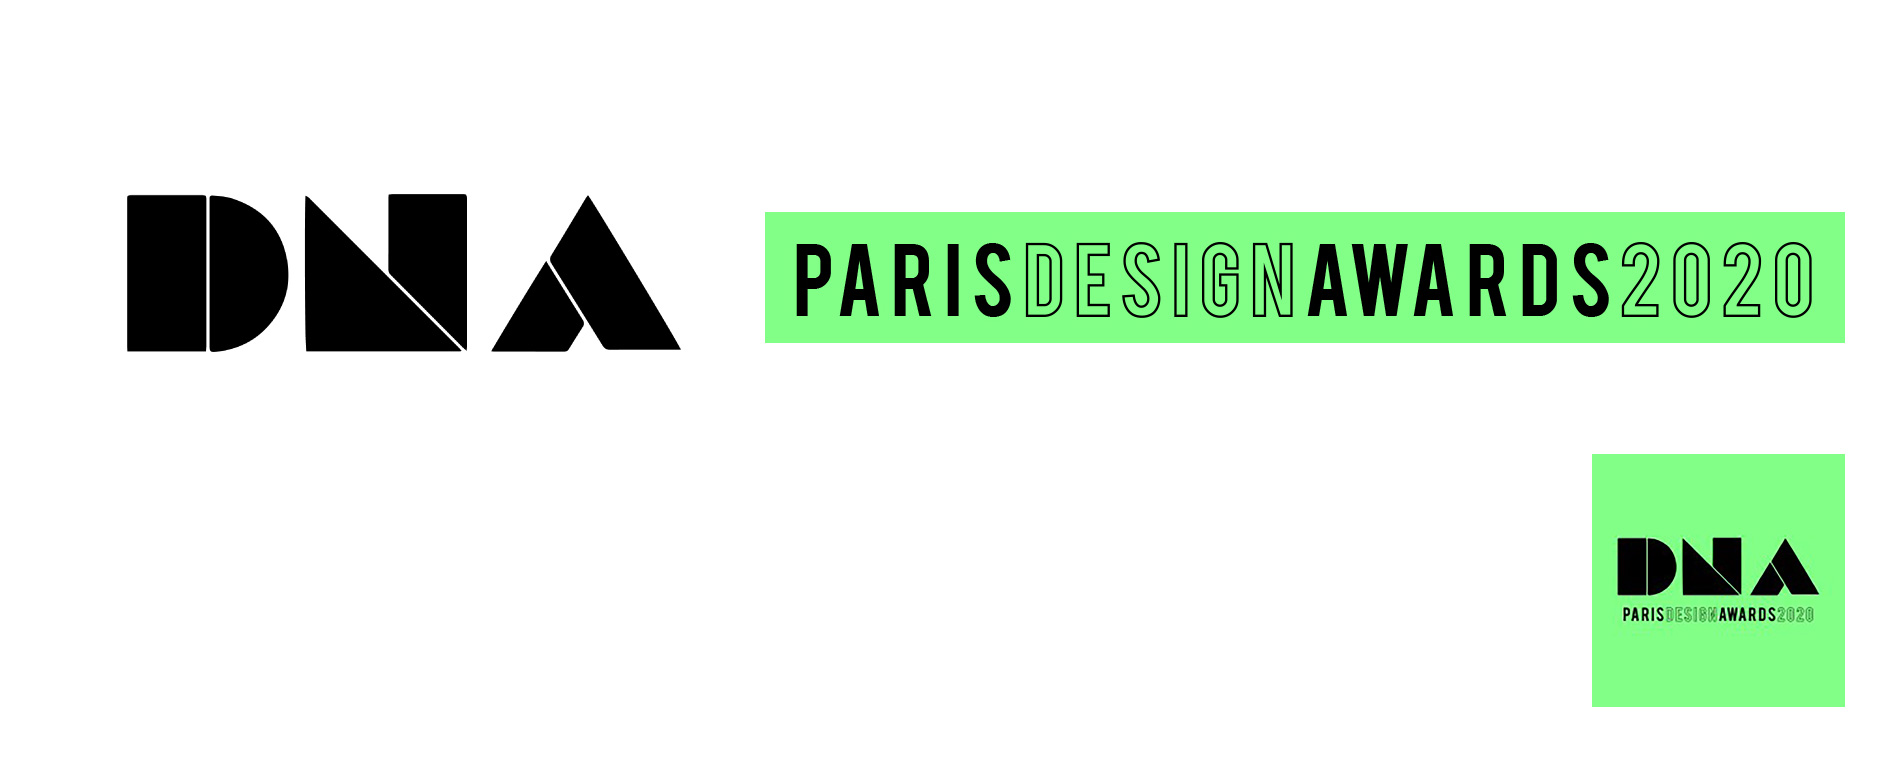 DNA Paris Design Awards 2020